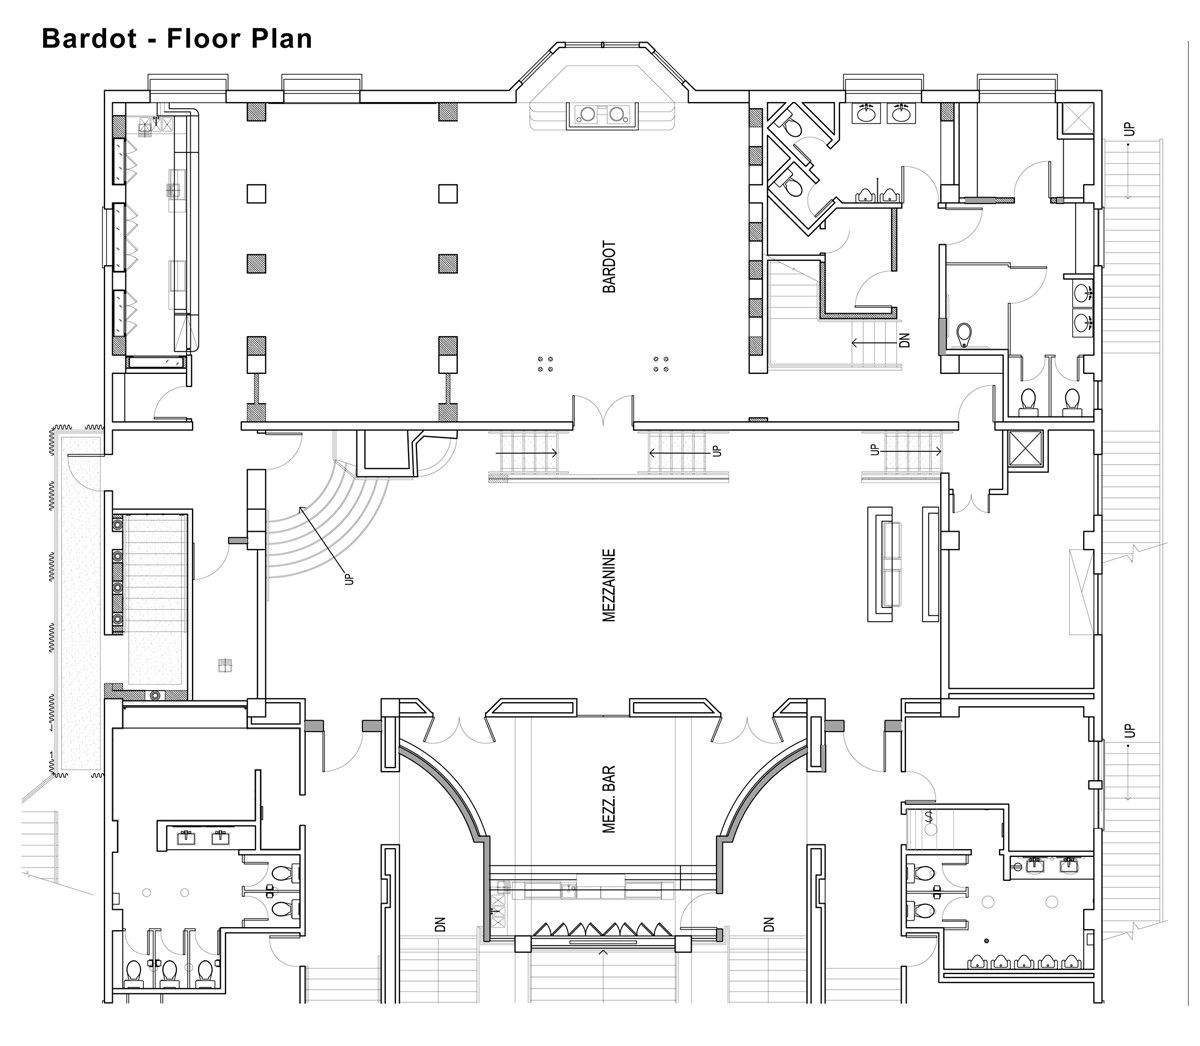 Nightclub Floor Plan Design Nightclub Floor Plan Design Floor